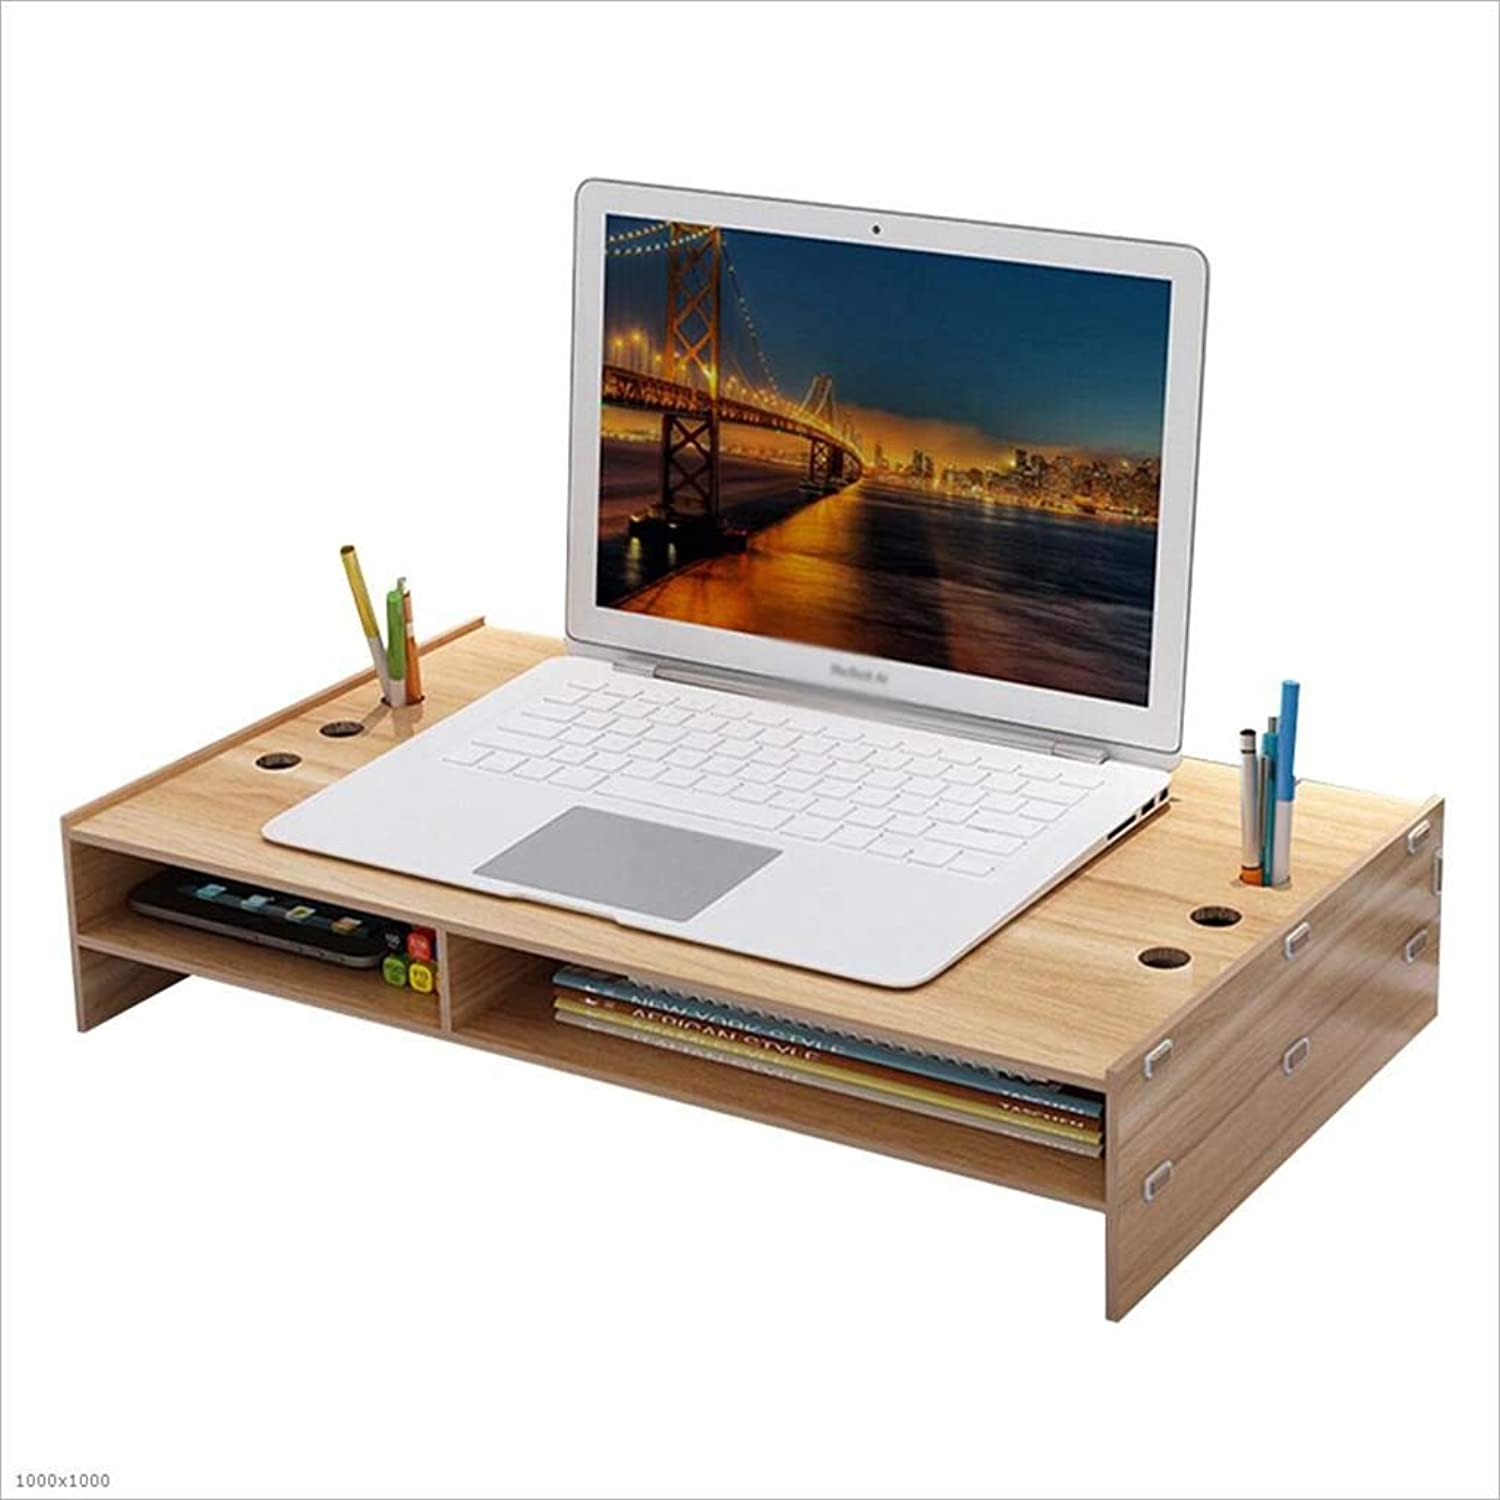 Laptop Monitor Screen Increase Bracket Office Desktop Storage Box Keyboard Storage Shelf,A